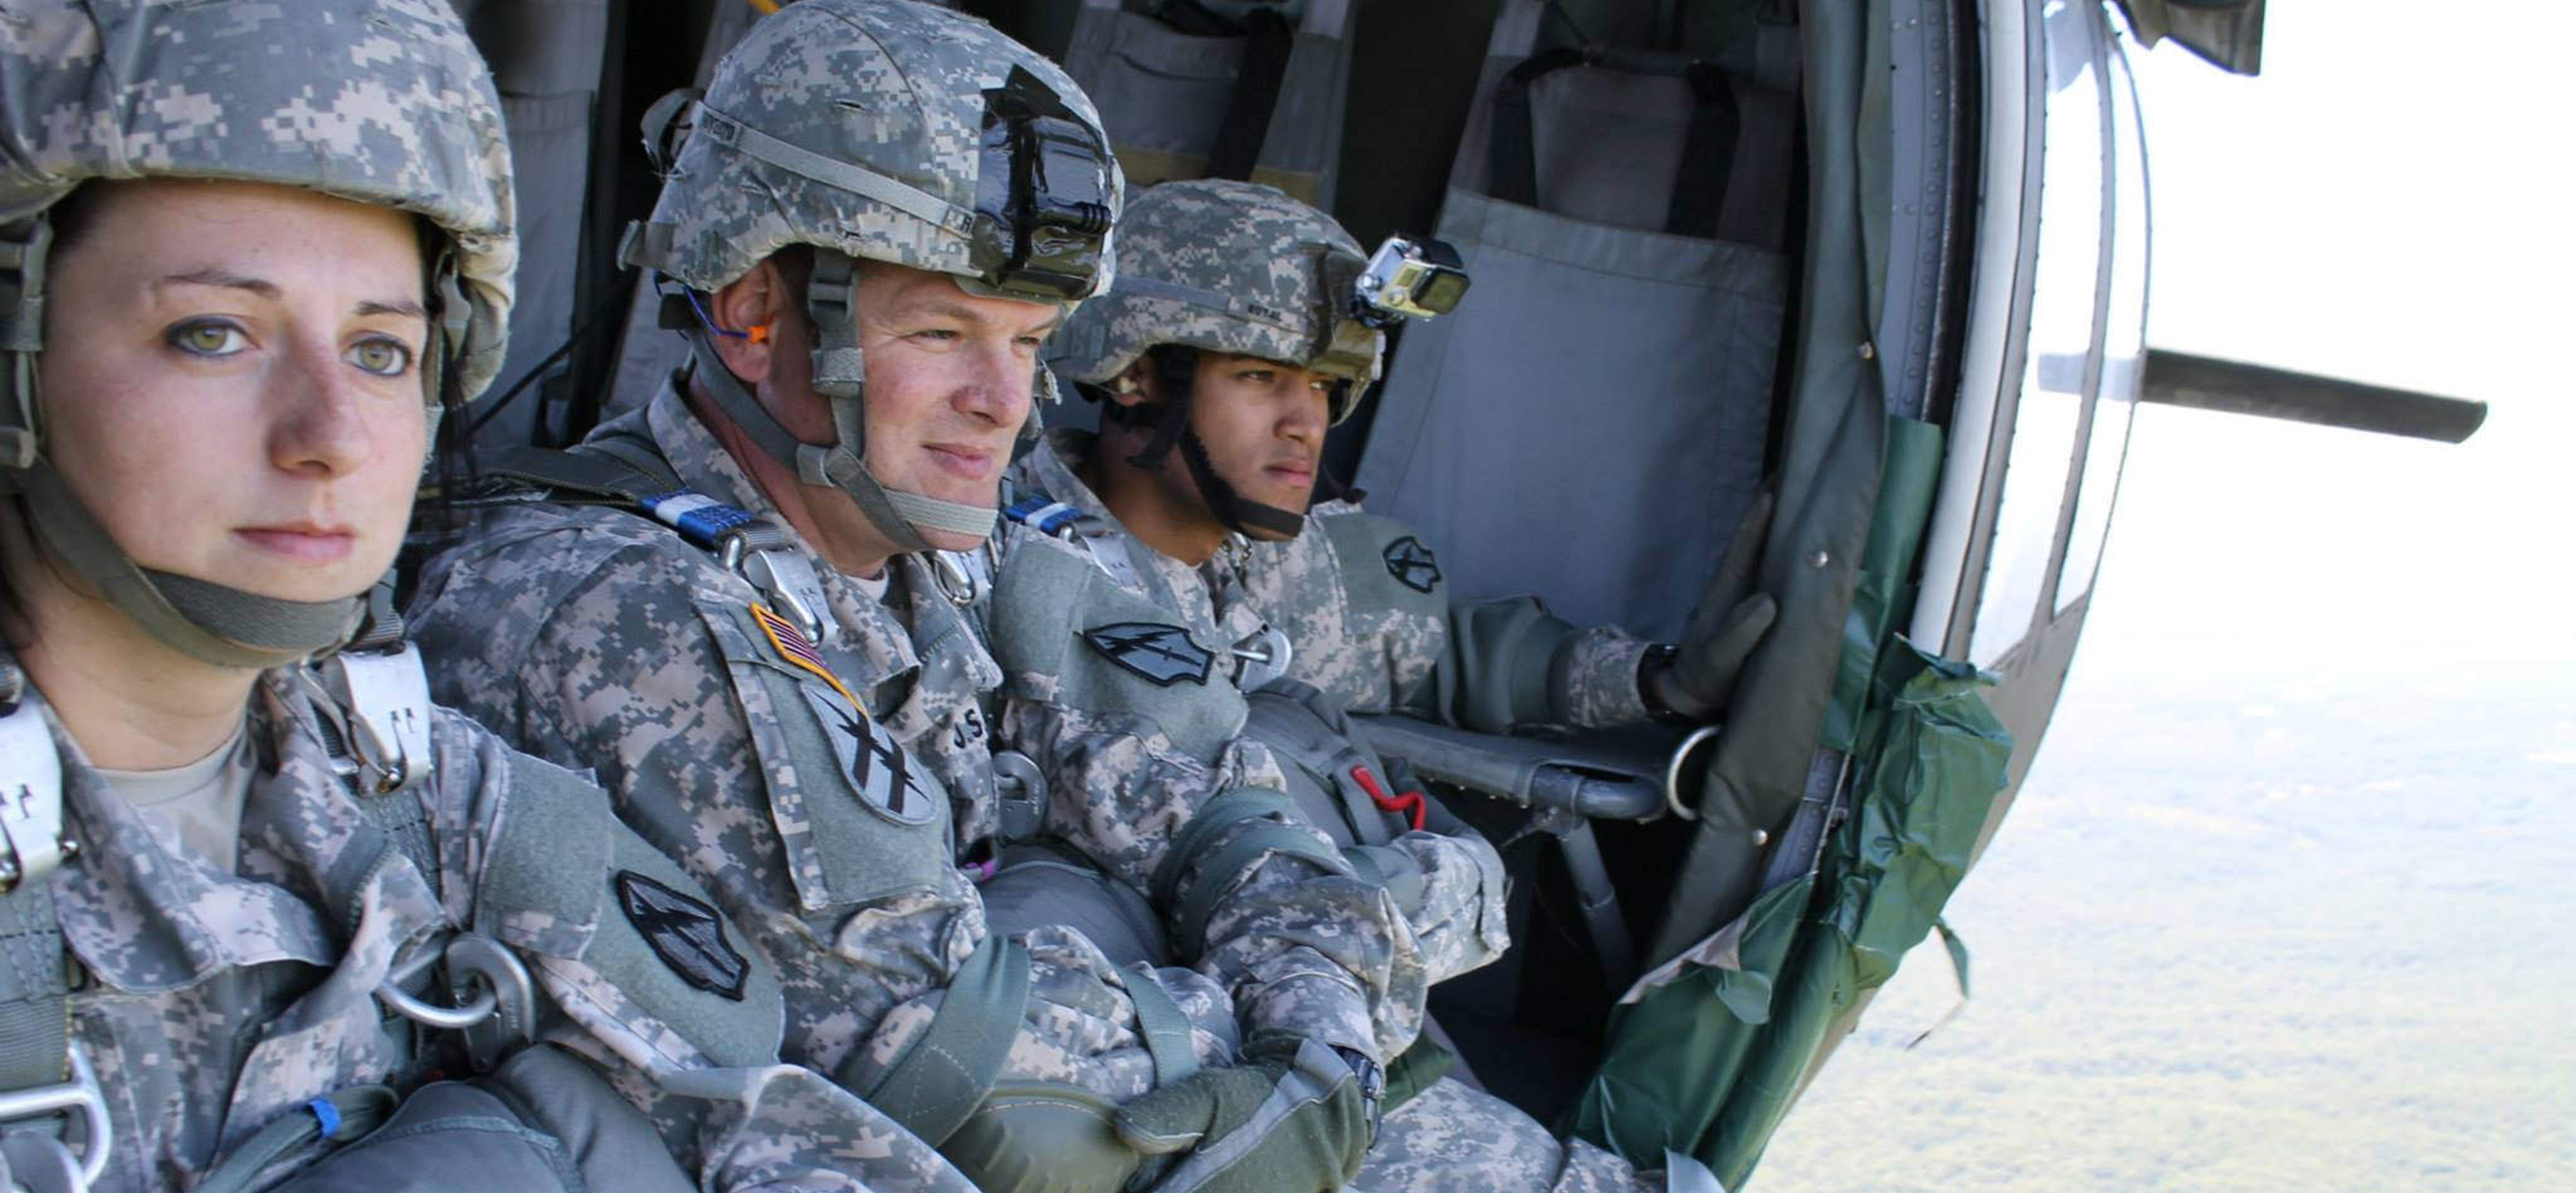 Military members in aircraft